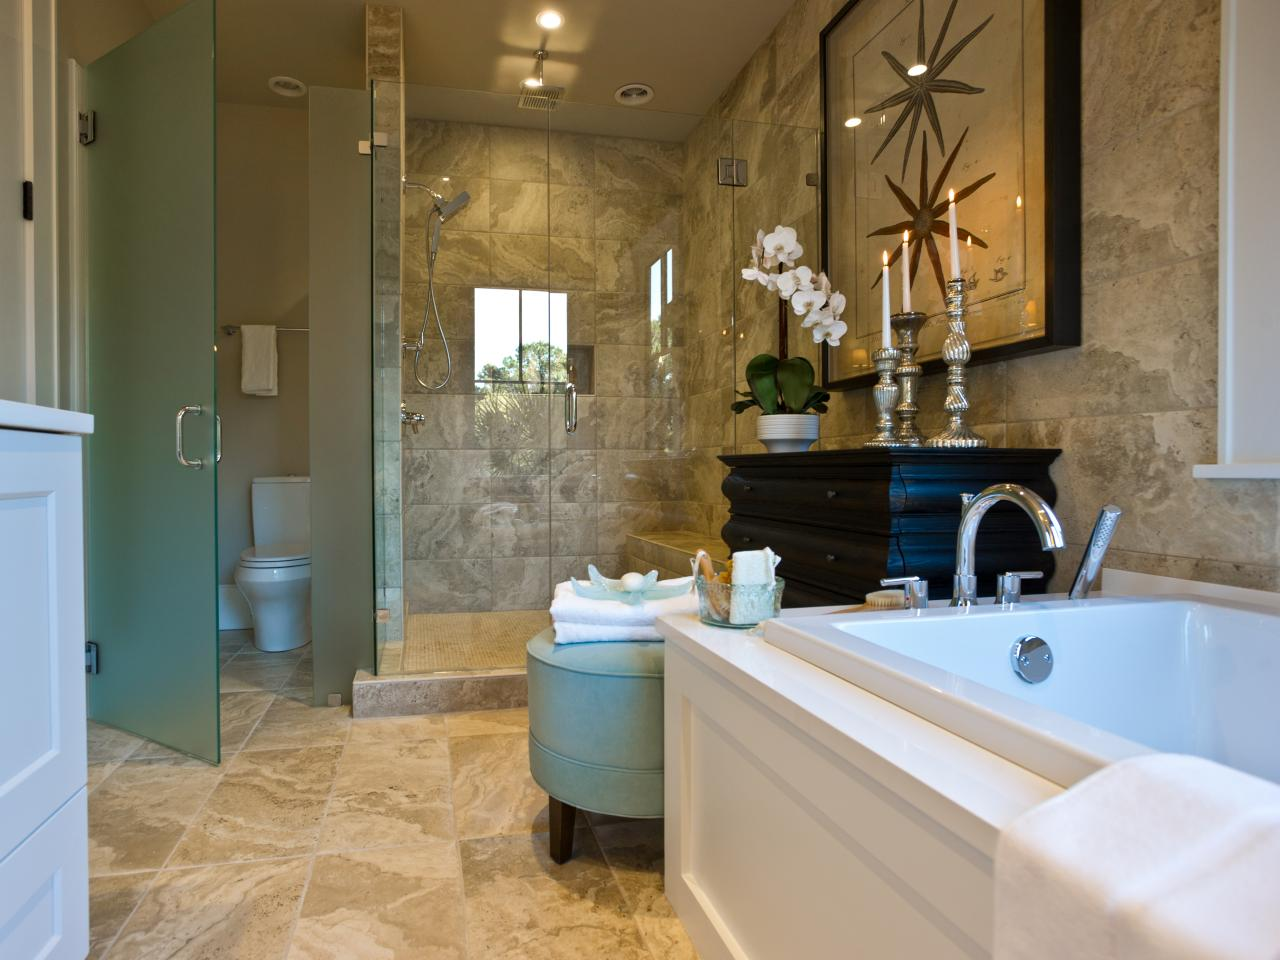 Hgtv dream home 2013 master bathroom pictures and video for Closet bathroom suites